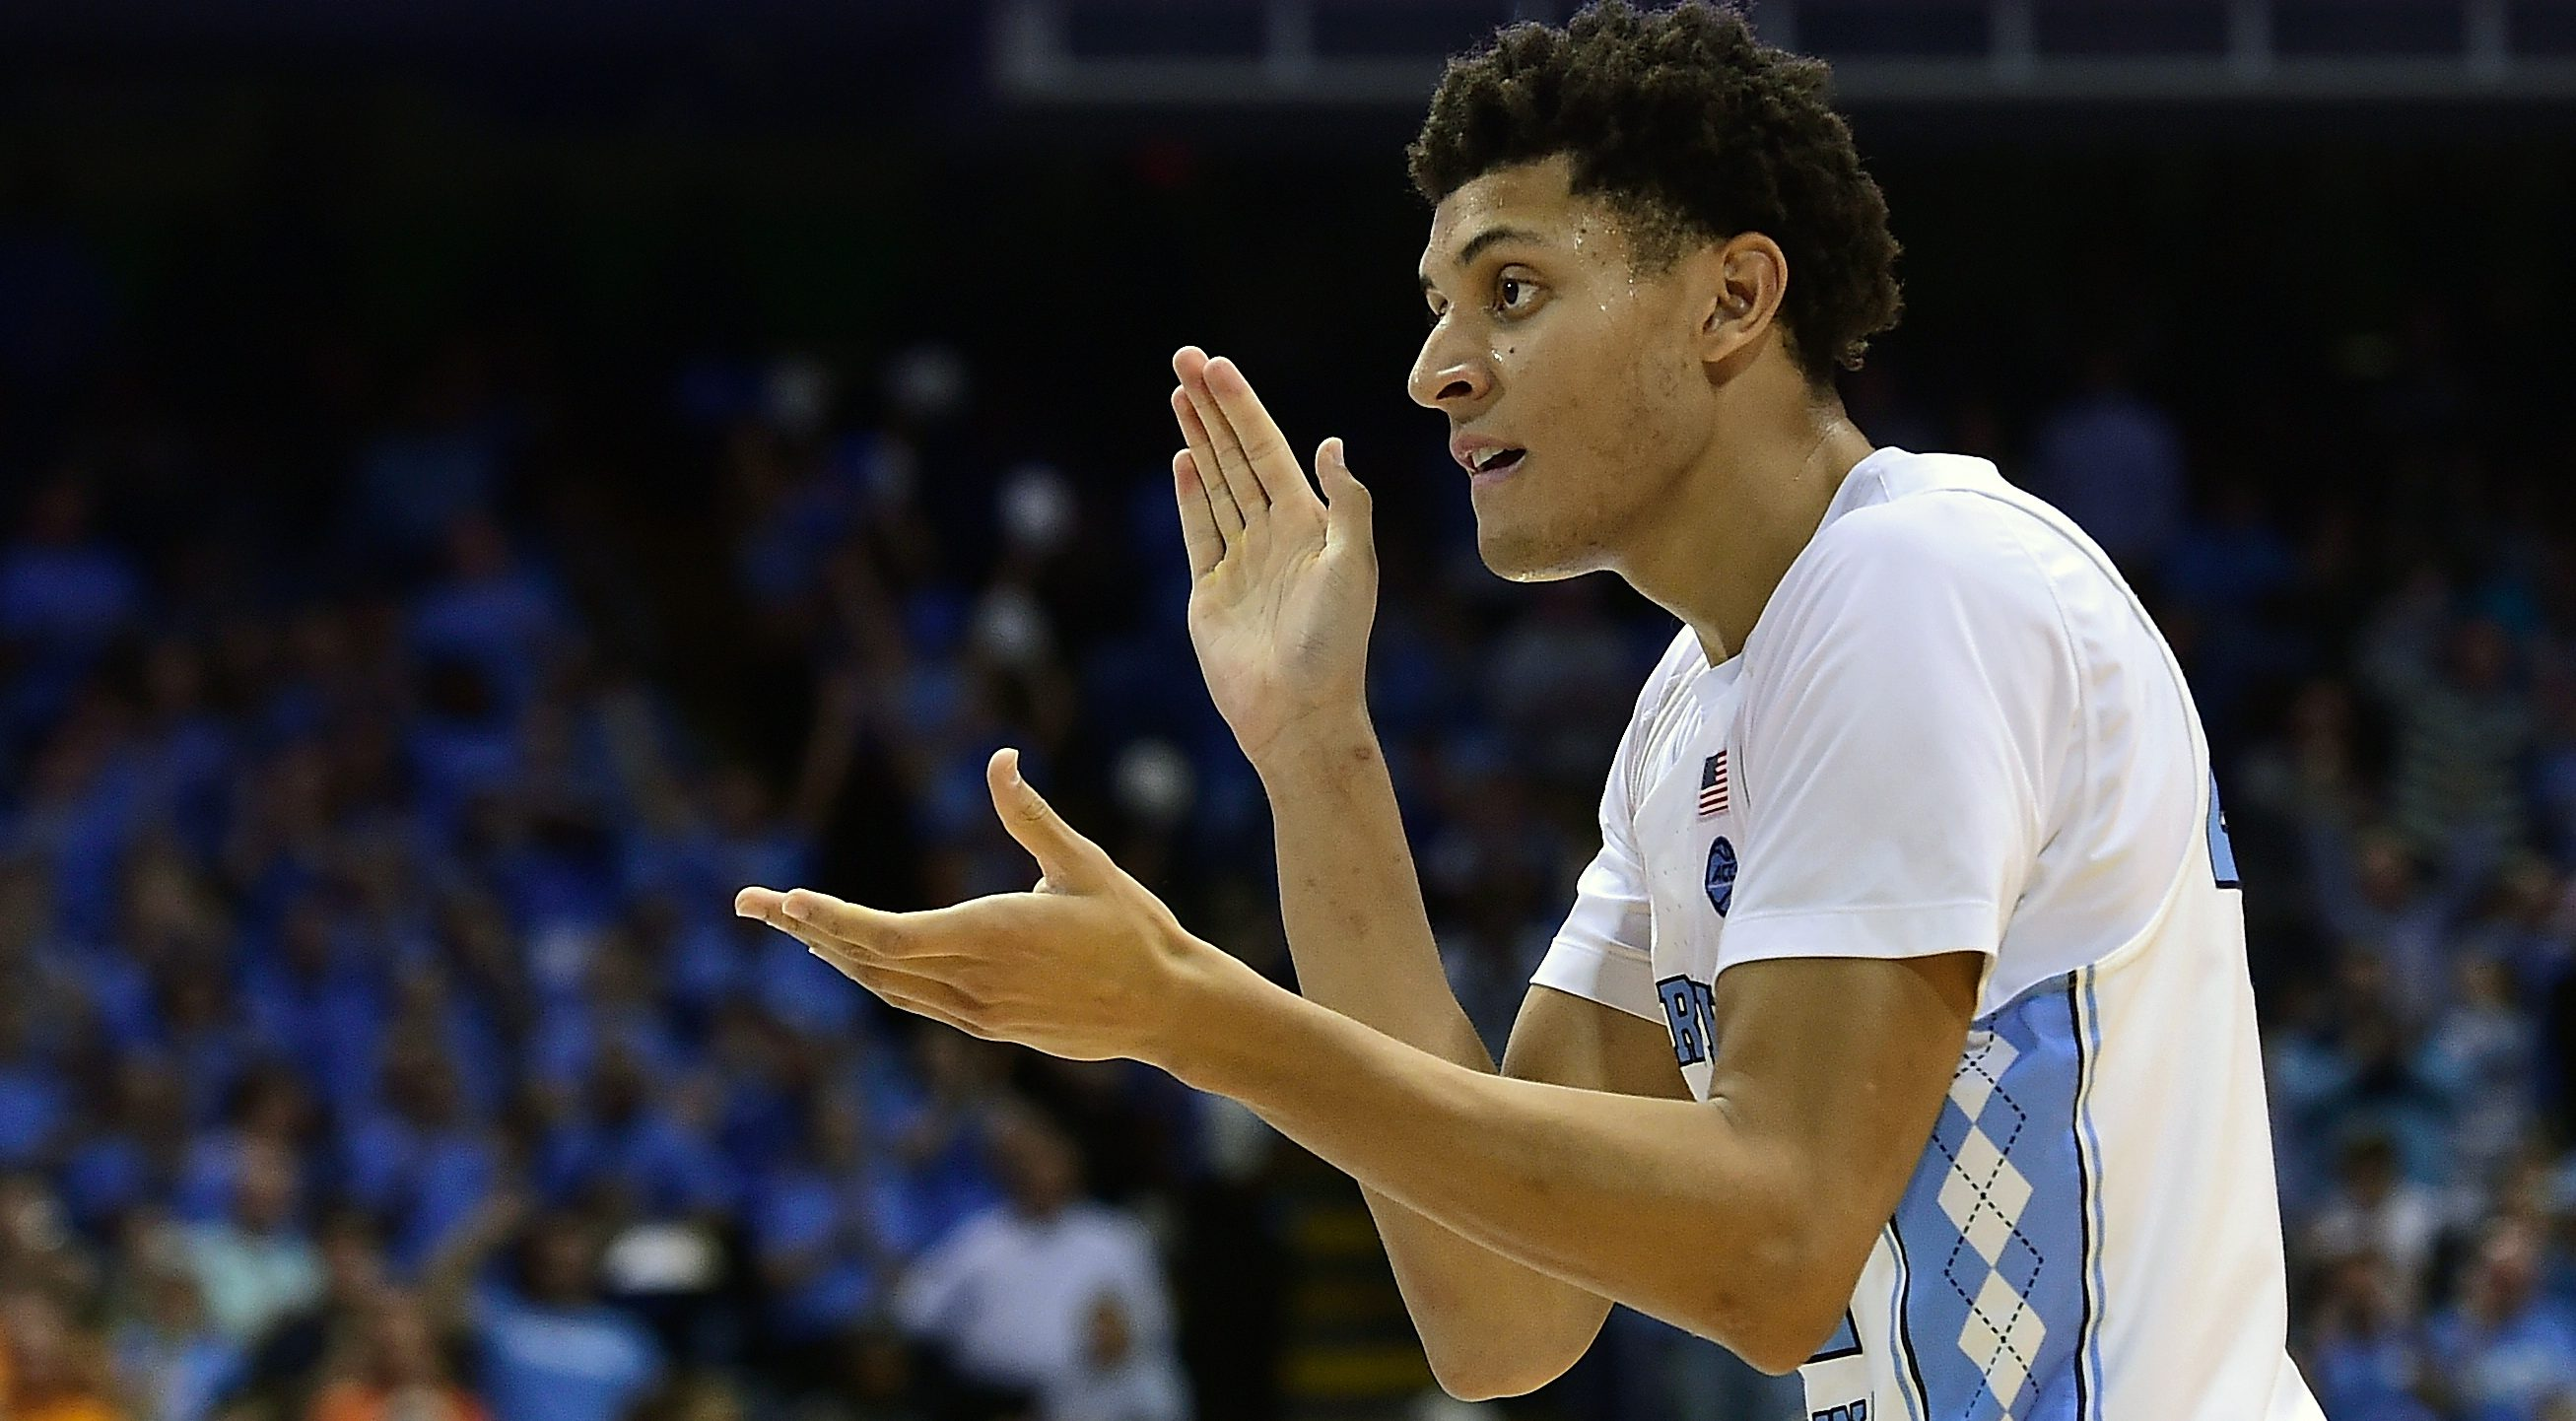 CHAPEL HILL, NC - DECEMBER 11: Justin Jackson #44 of the North Carolina Tar Heels reacts after a play during their game against the Tennessee Volunteers at Dean Smith Center on December 11, 2016 in Chapel Hill, North Carolina. (Photo by Jared C. Tilton/Getty Images)